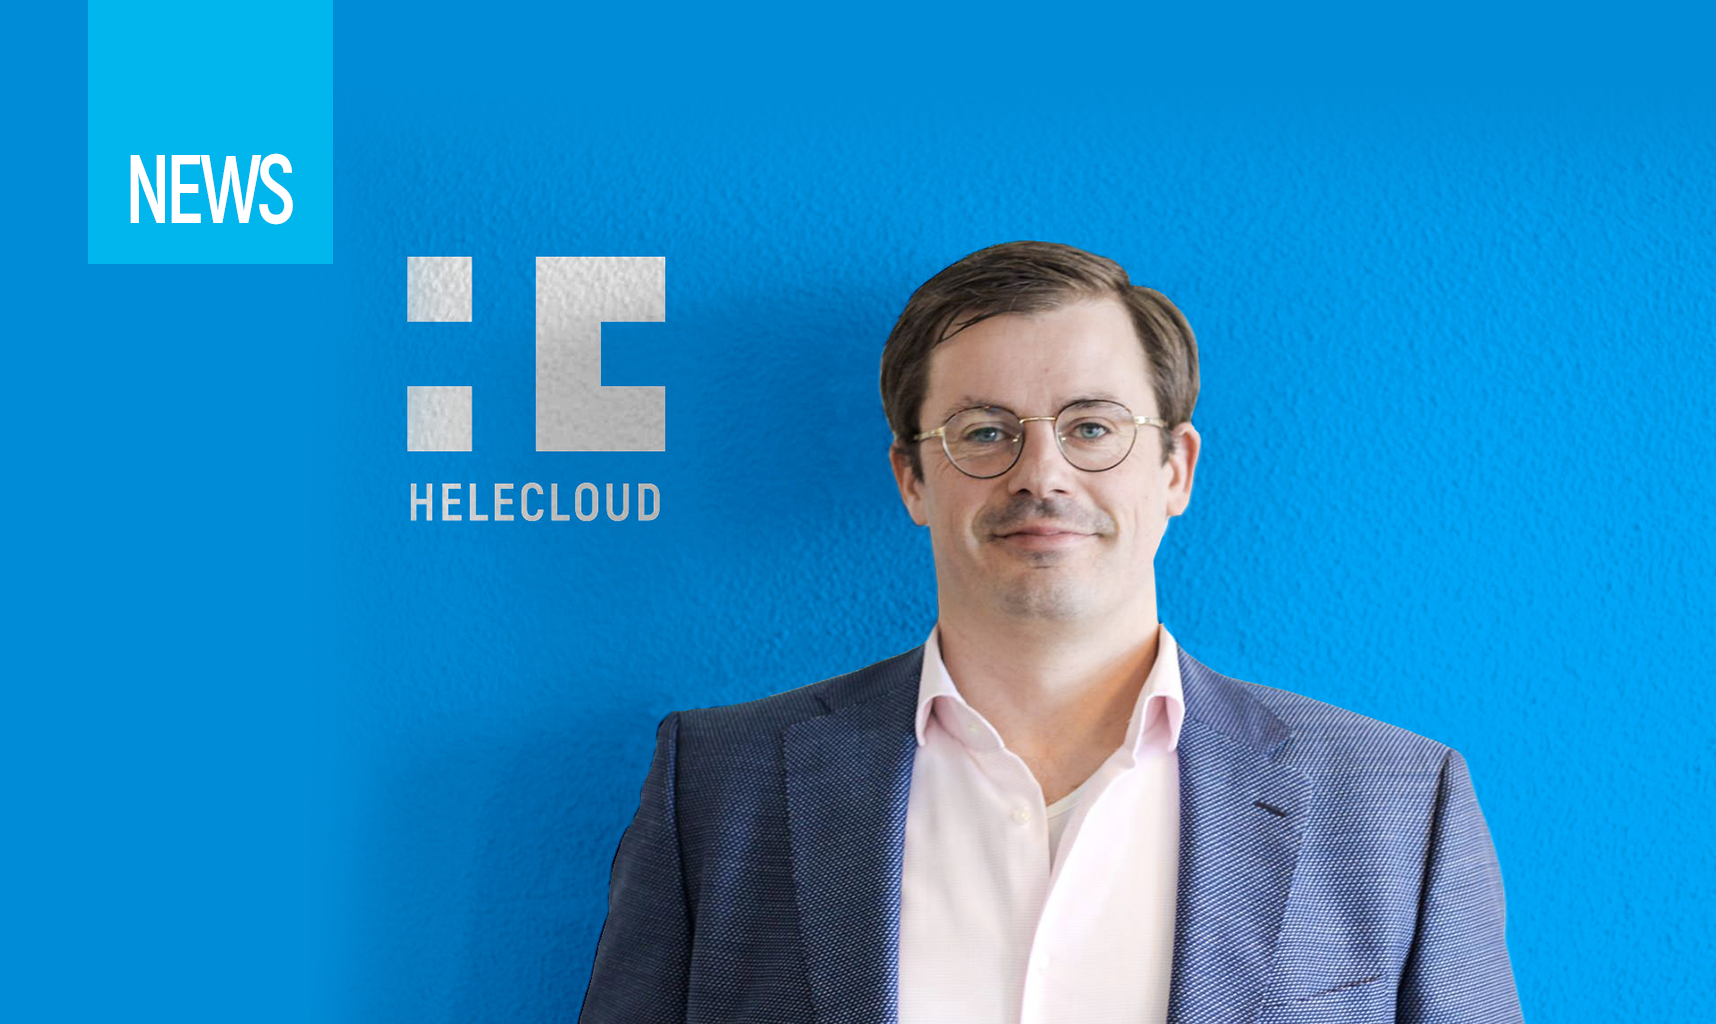 AWS Premier Consulting Partner, HeleCloud, Strengthens Position as Leading AWS Consultancy by Appointing a Chief Technology Officer